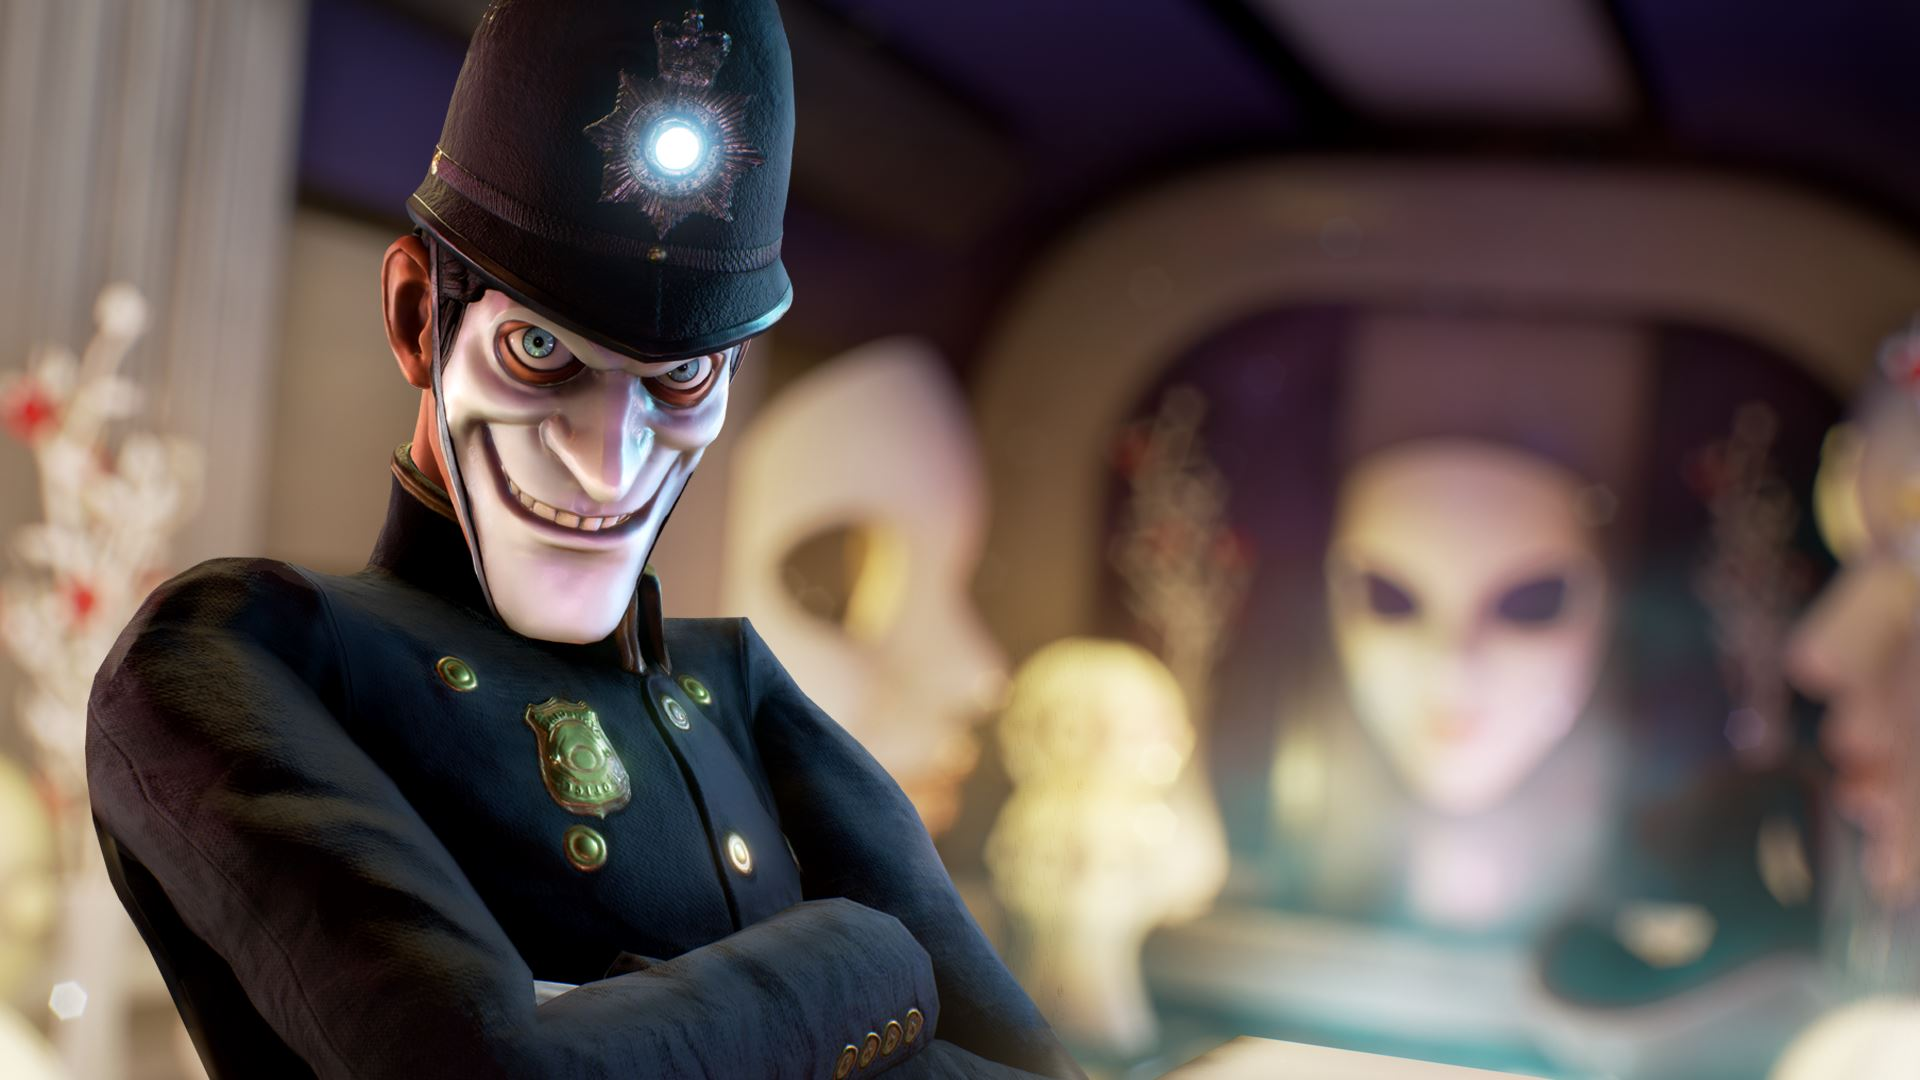 We Happy Few Release Date Pushed Back to Summer 2018